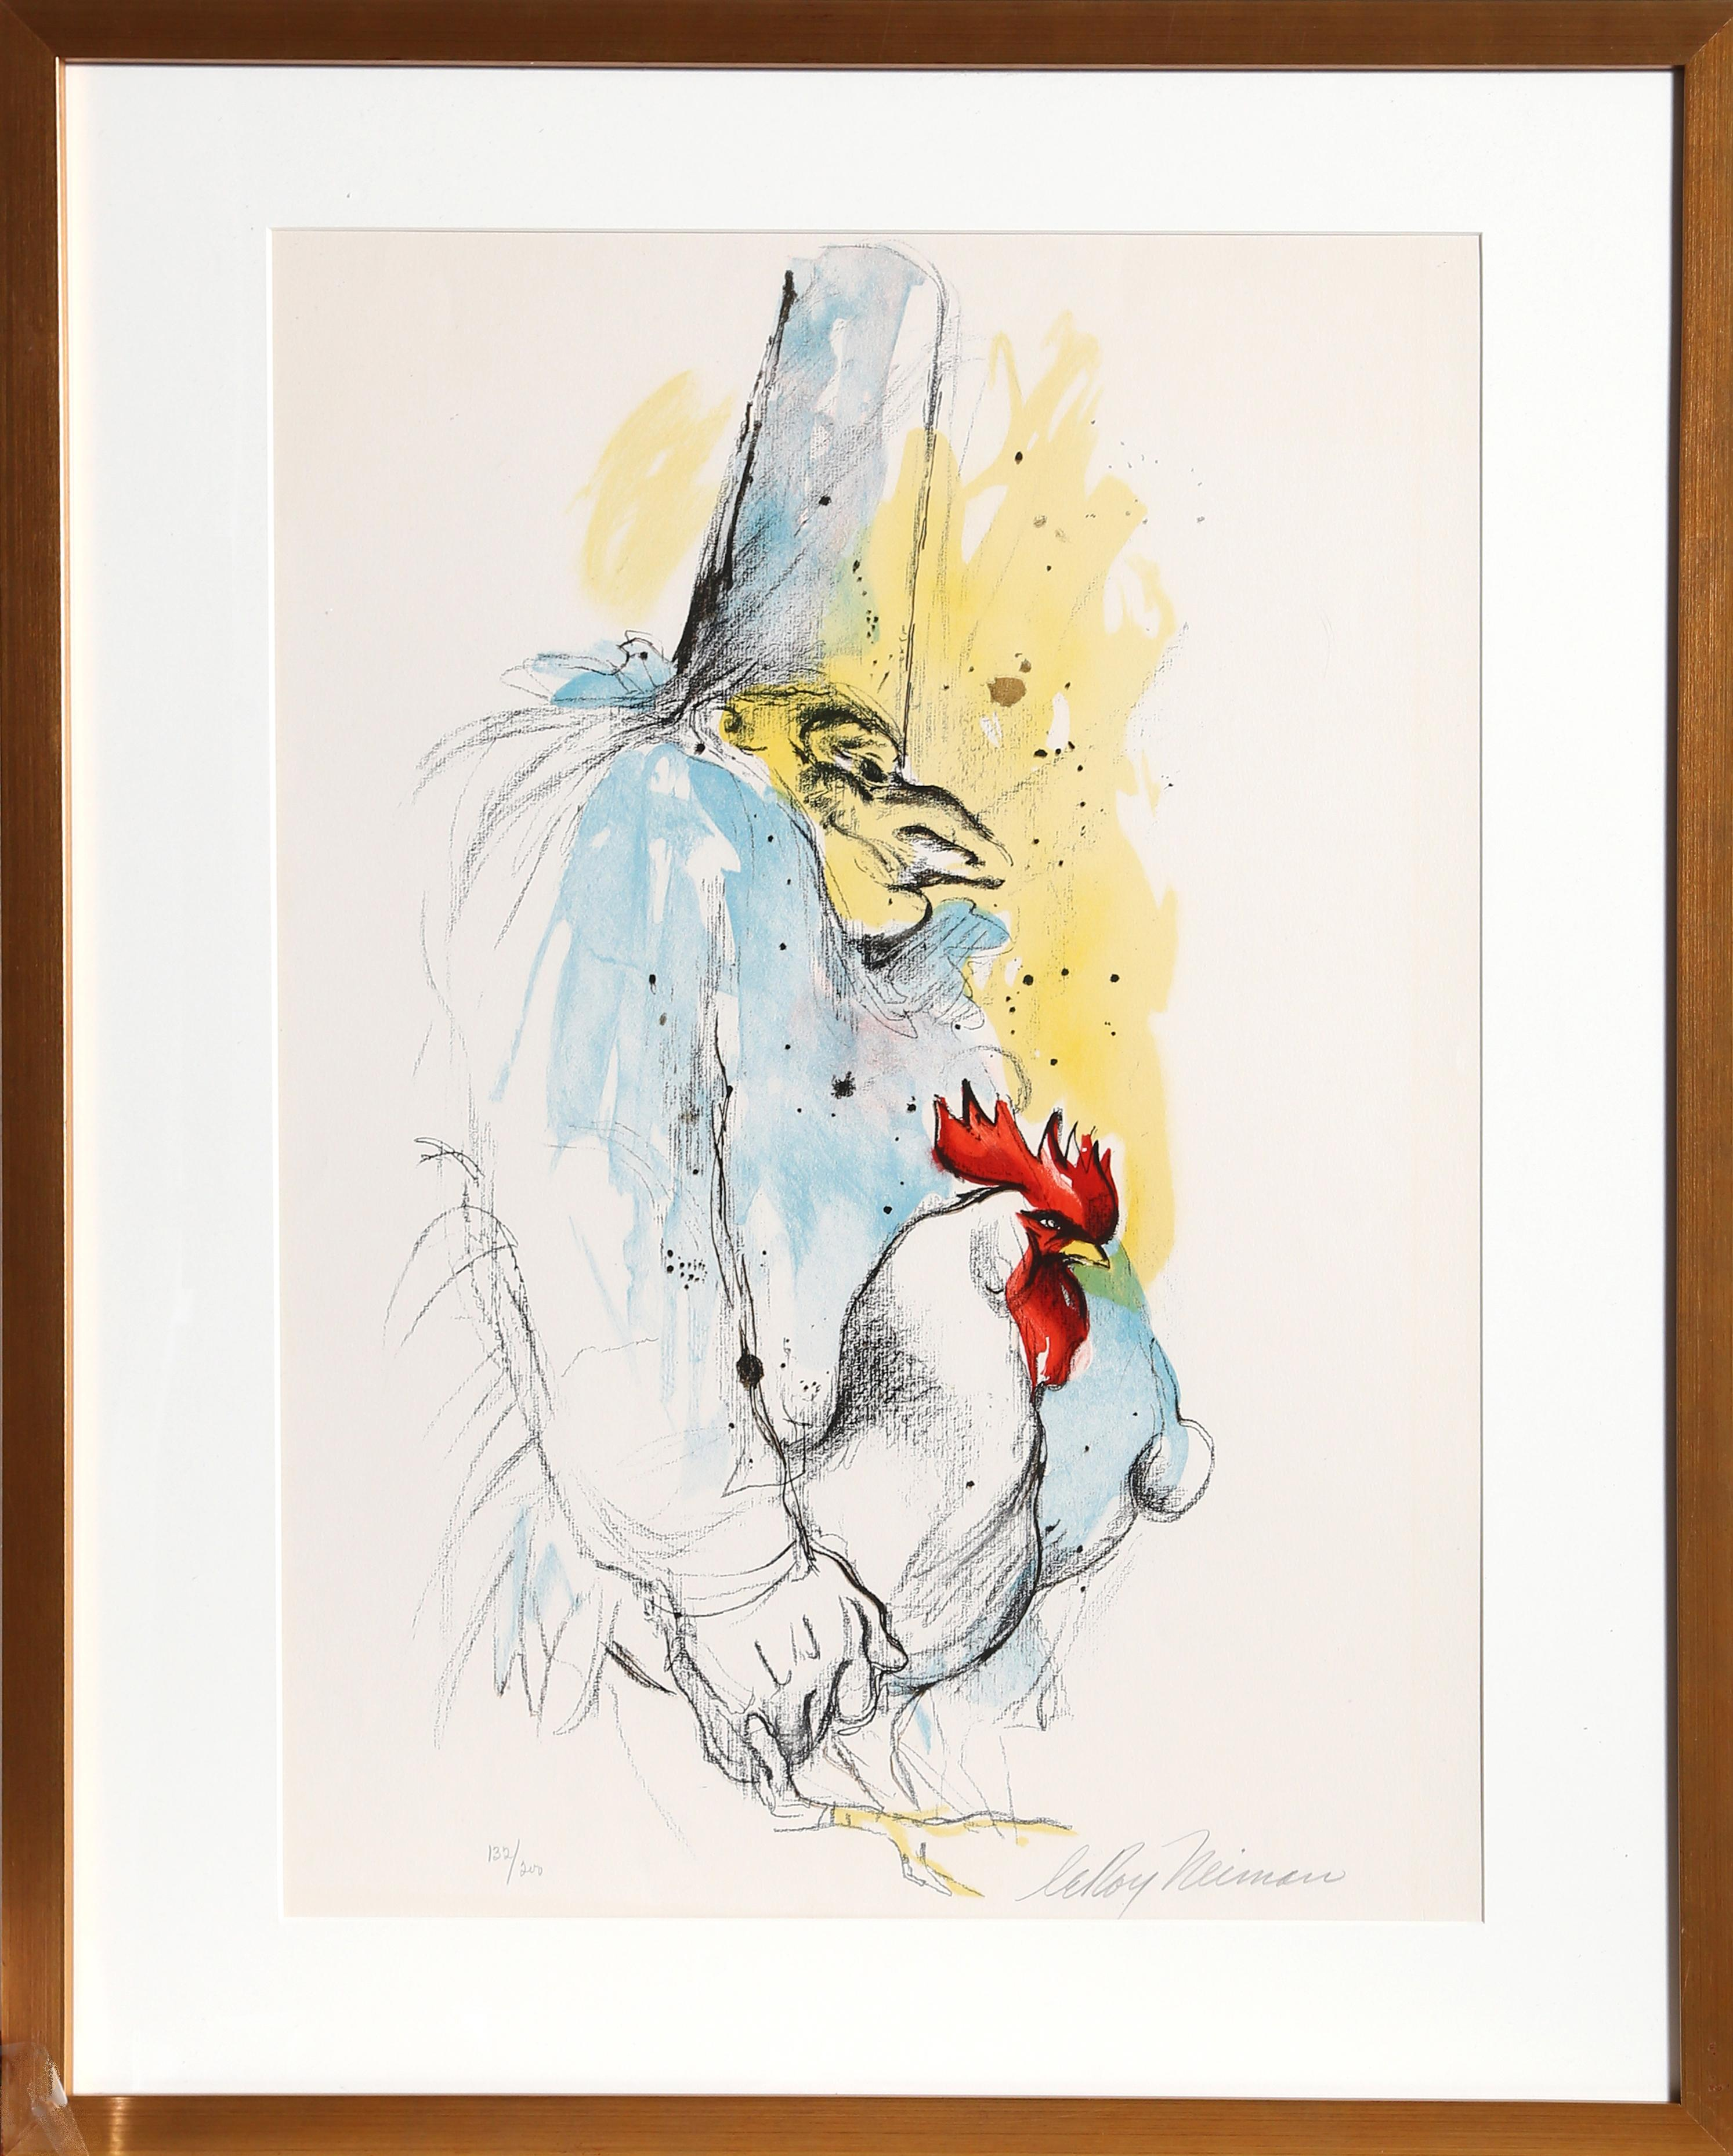 Punchinello Signed Lithograph by LeRoy Neiman